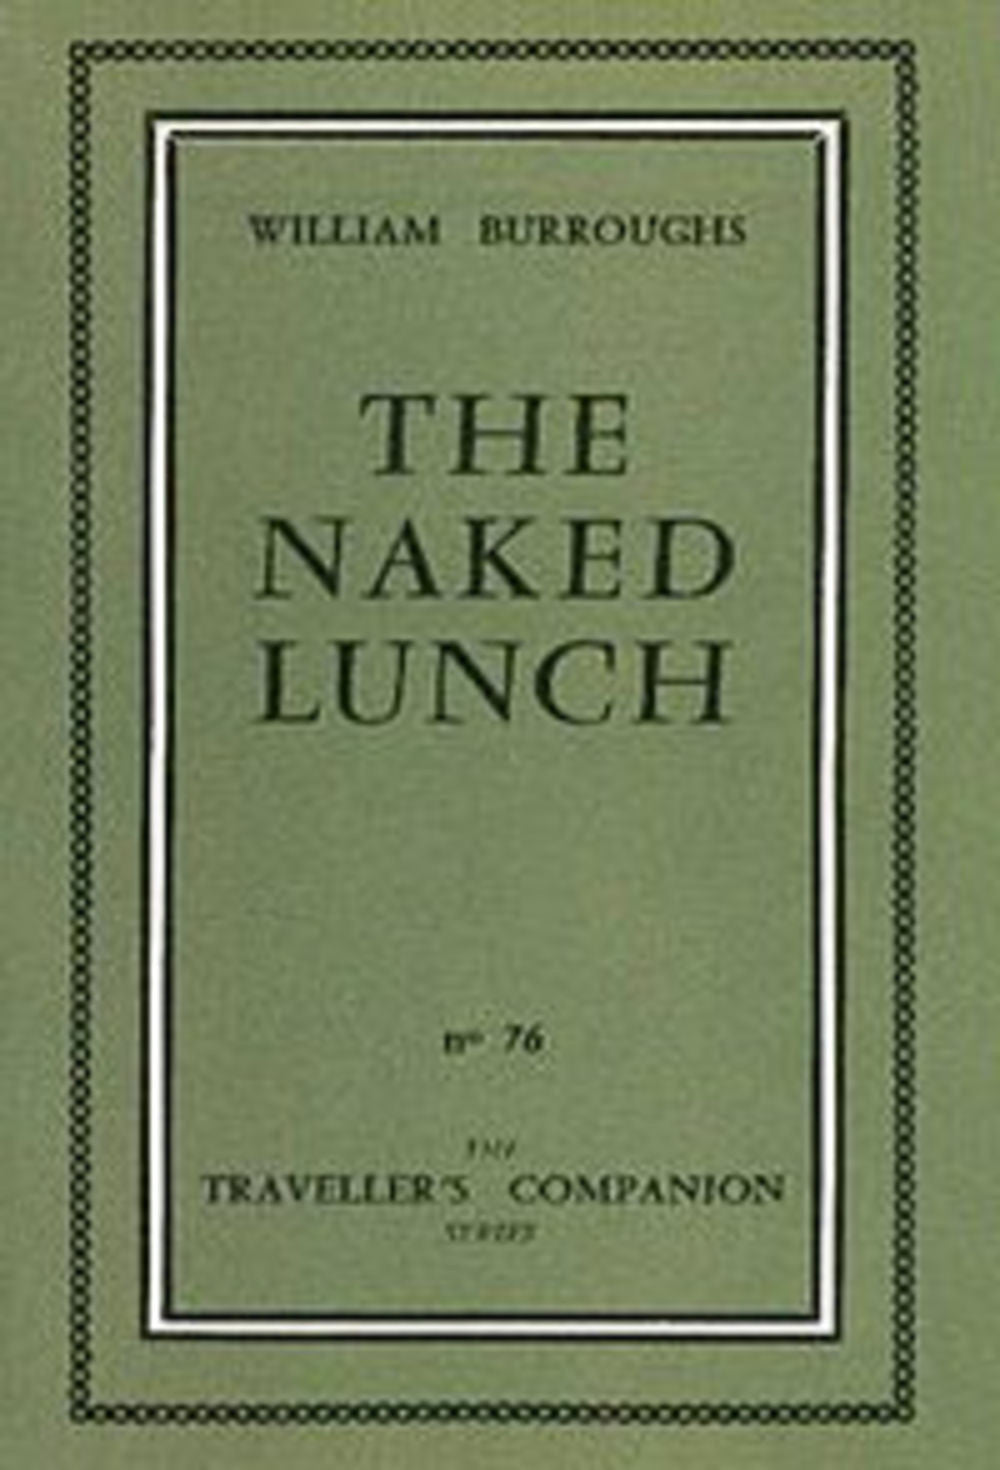 the naked lunch. 1